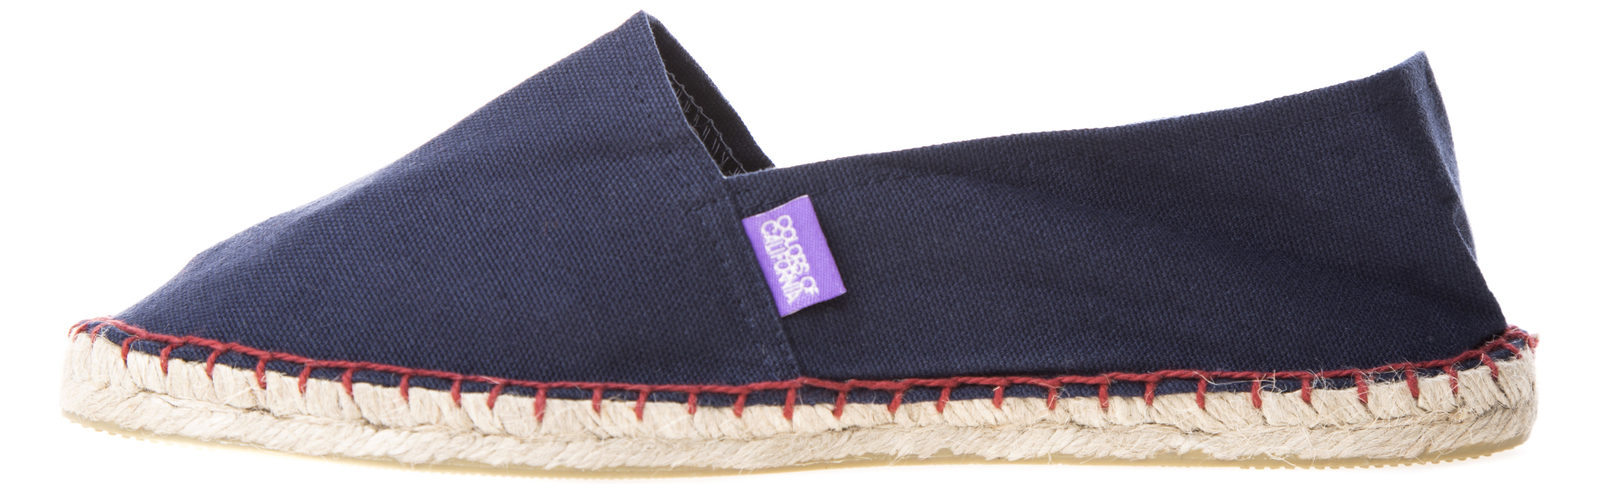 Colors of California Espadrilles 41, Kék fotója